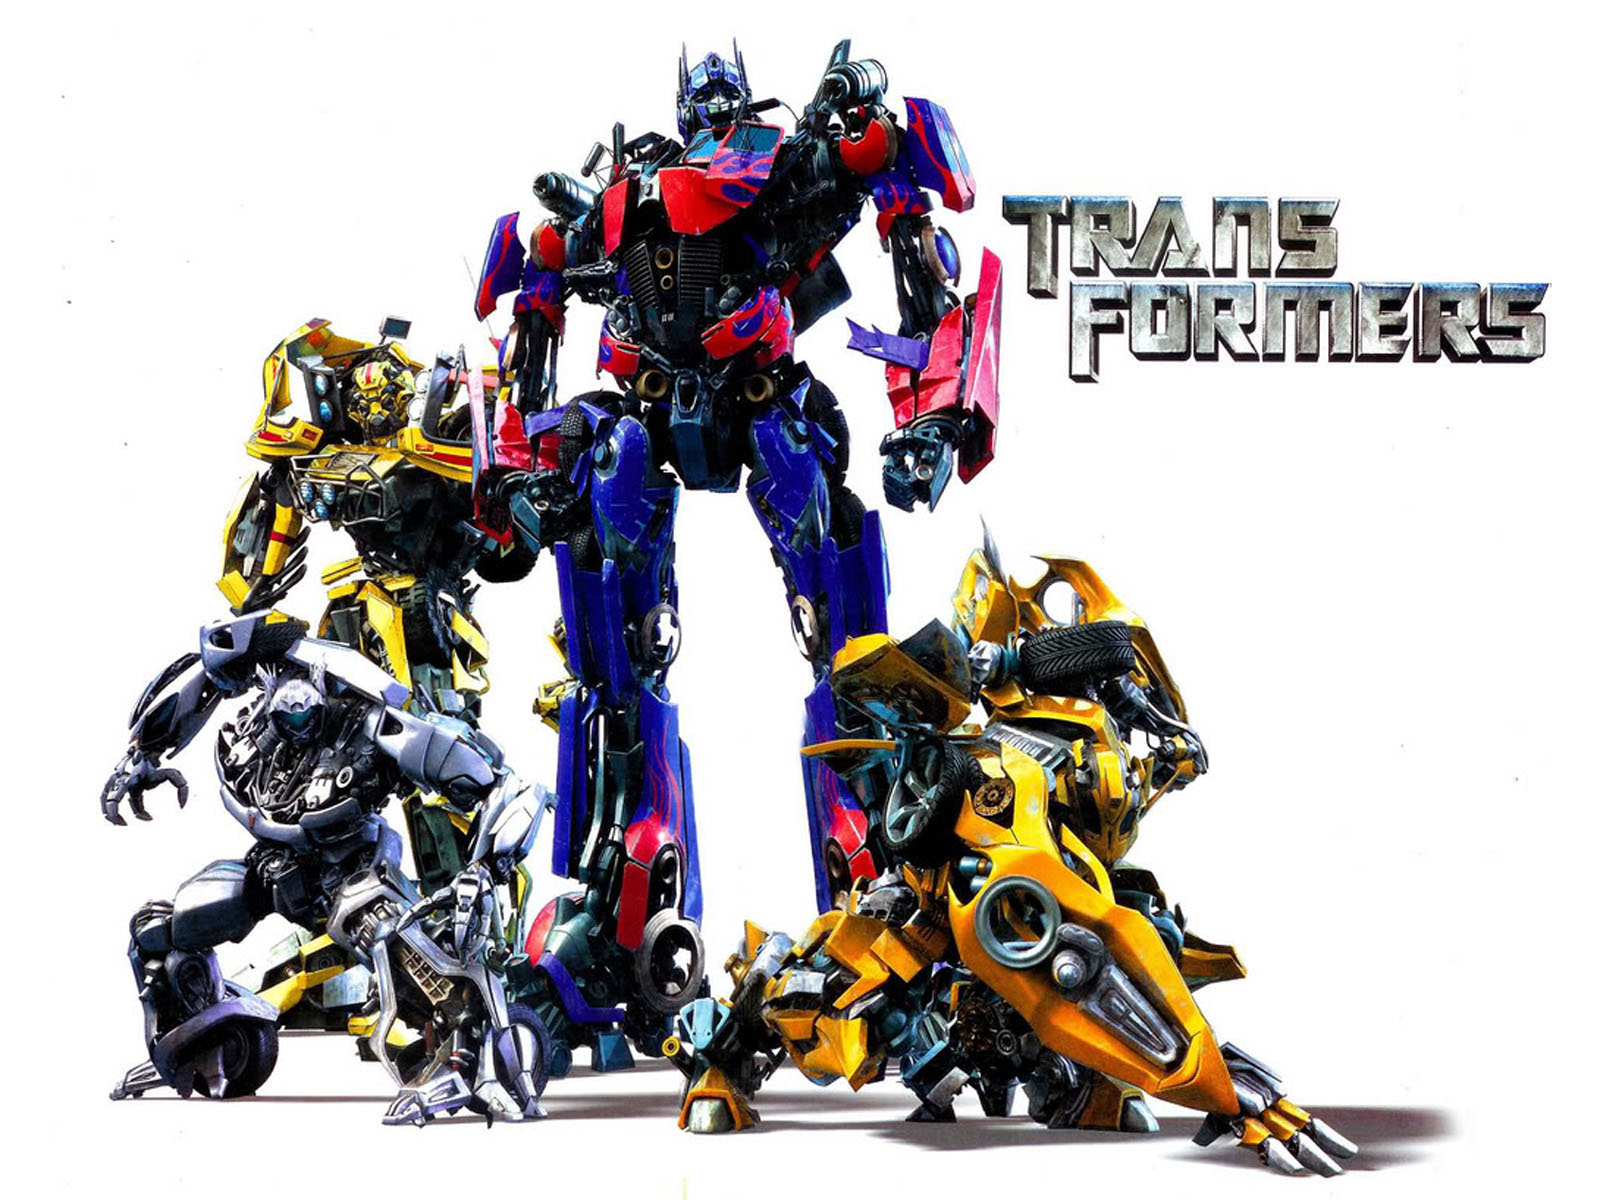 wallpapers Transformers Wallpapers 1600x1200